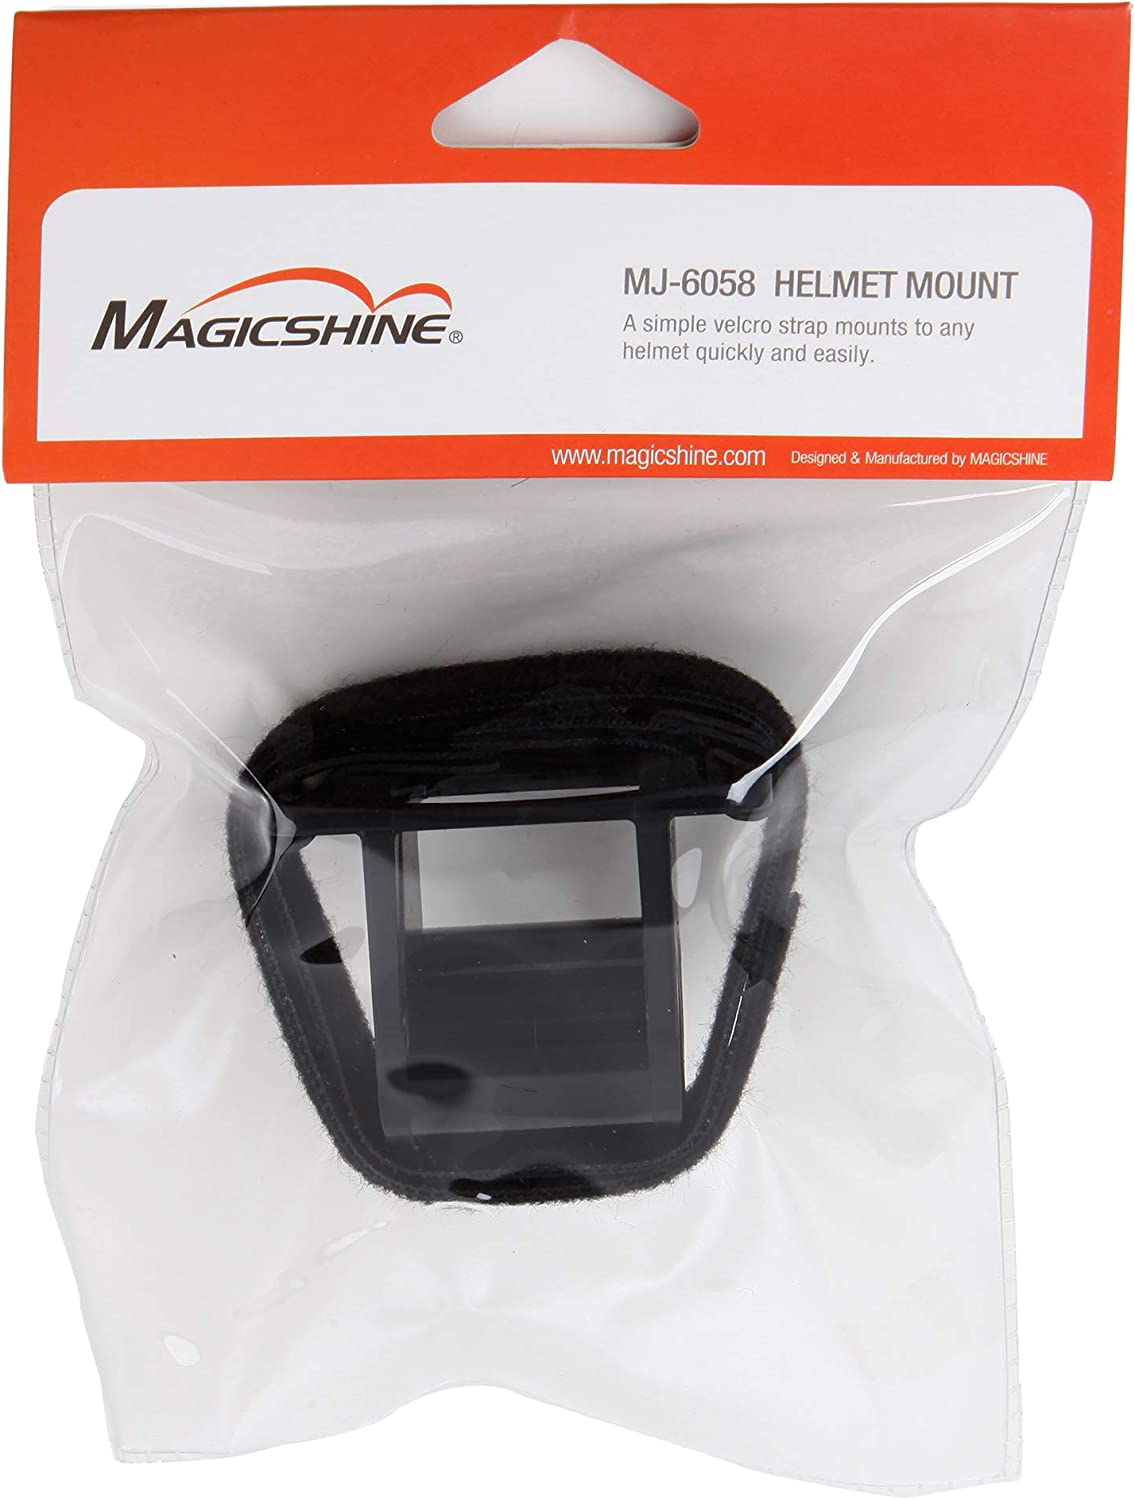 Magicshine MJ-6058 Helmet Mount--Compatible with O-ring bike lights